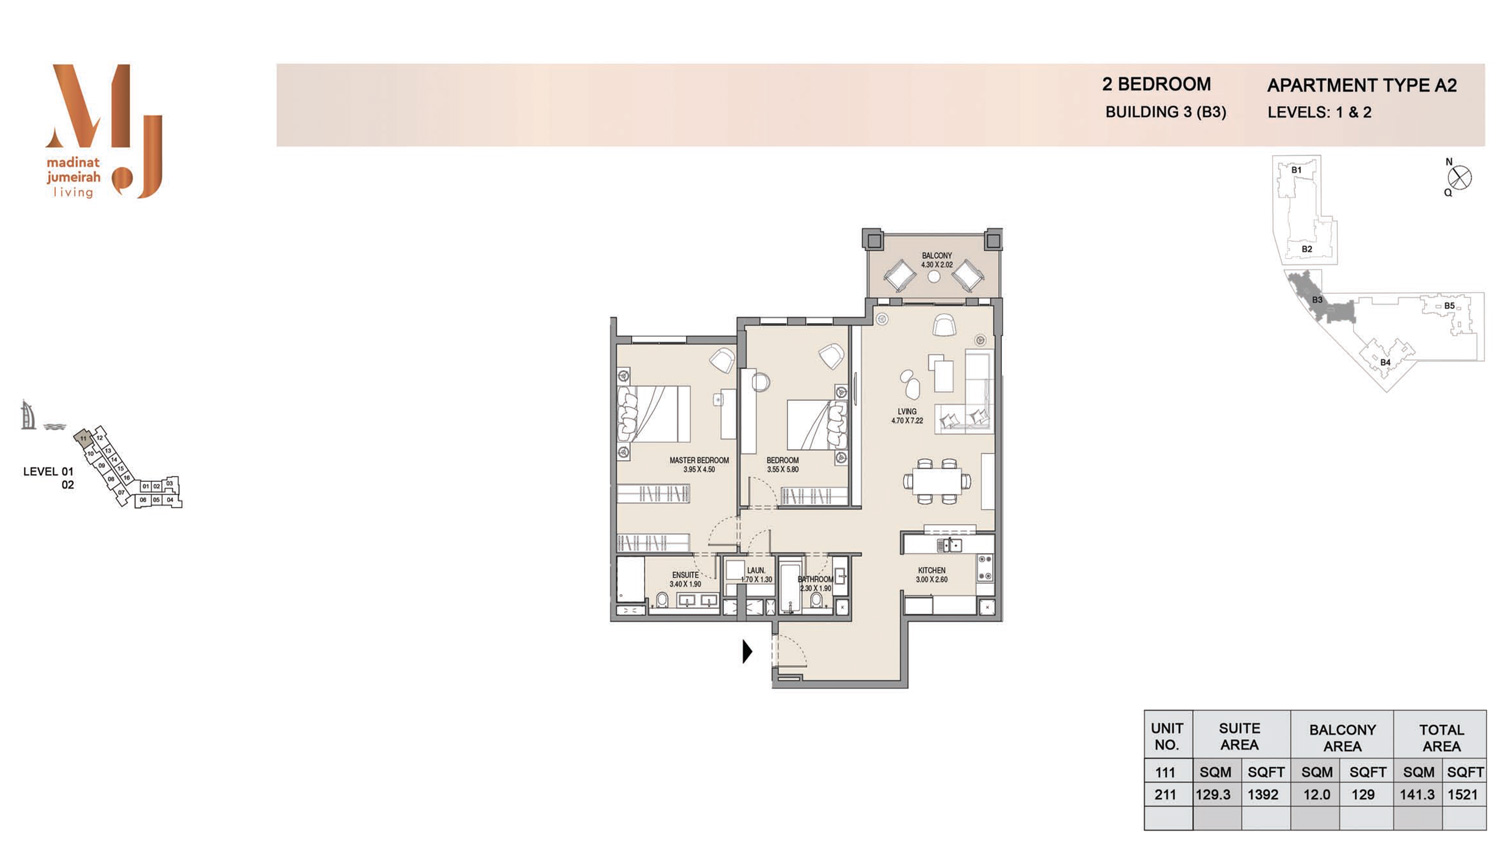 Building3 2 Bedroom, Type A2, Levels 1 to 2, Size 1521 sq.ft